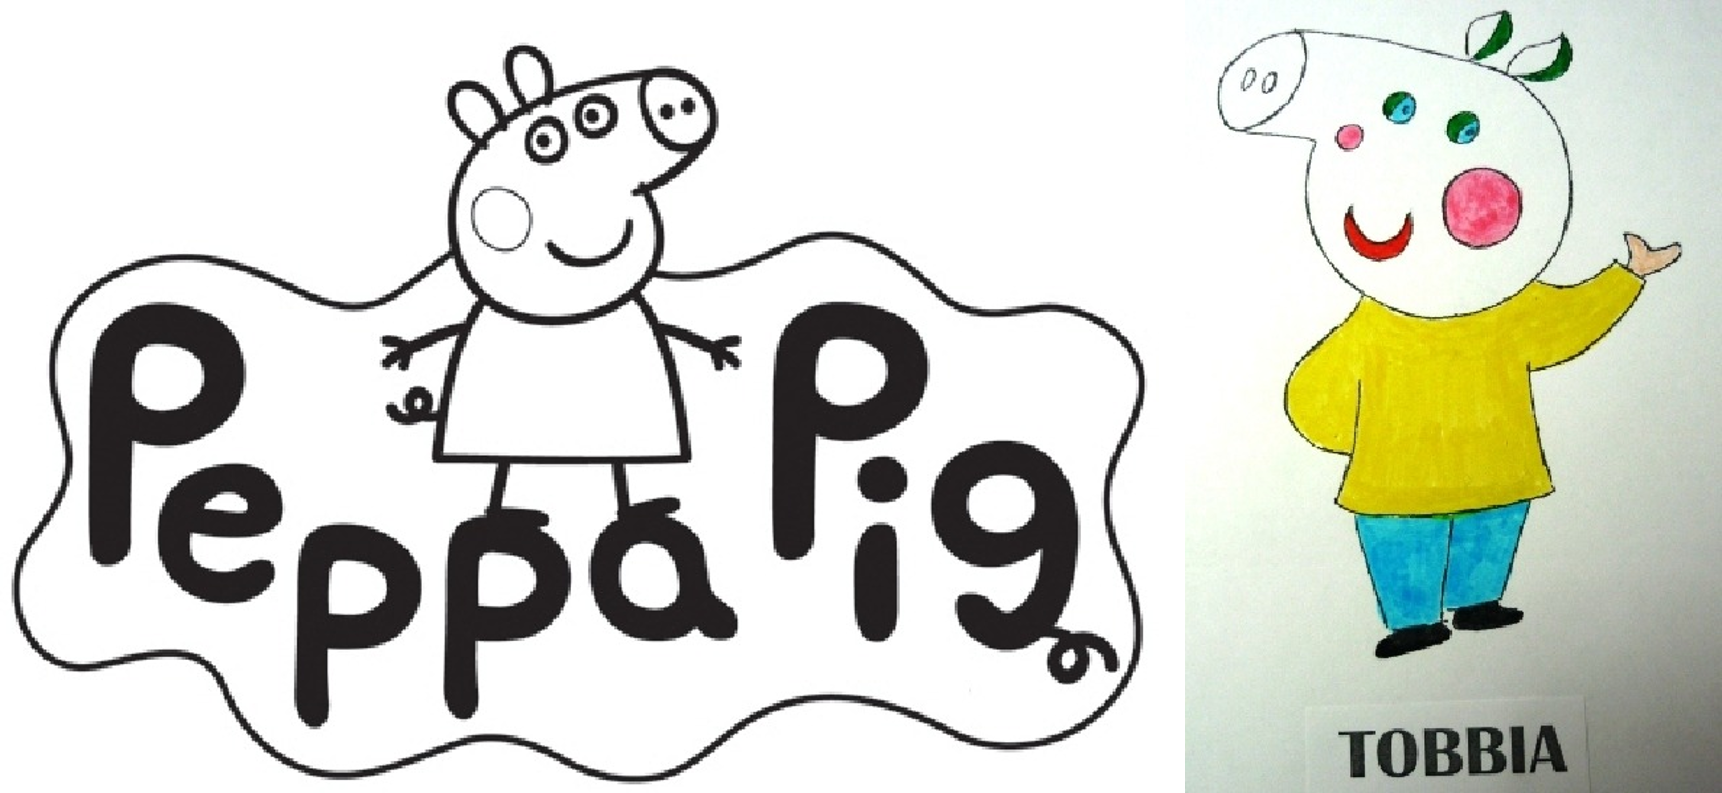 Peppa Pig Eutm Victorious Over Imposter Pig Mark